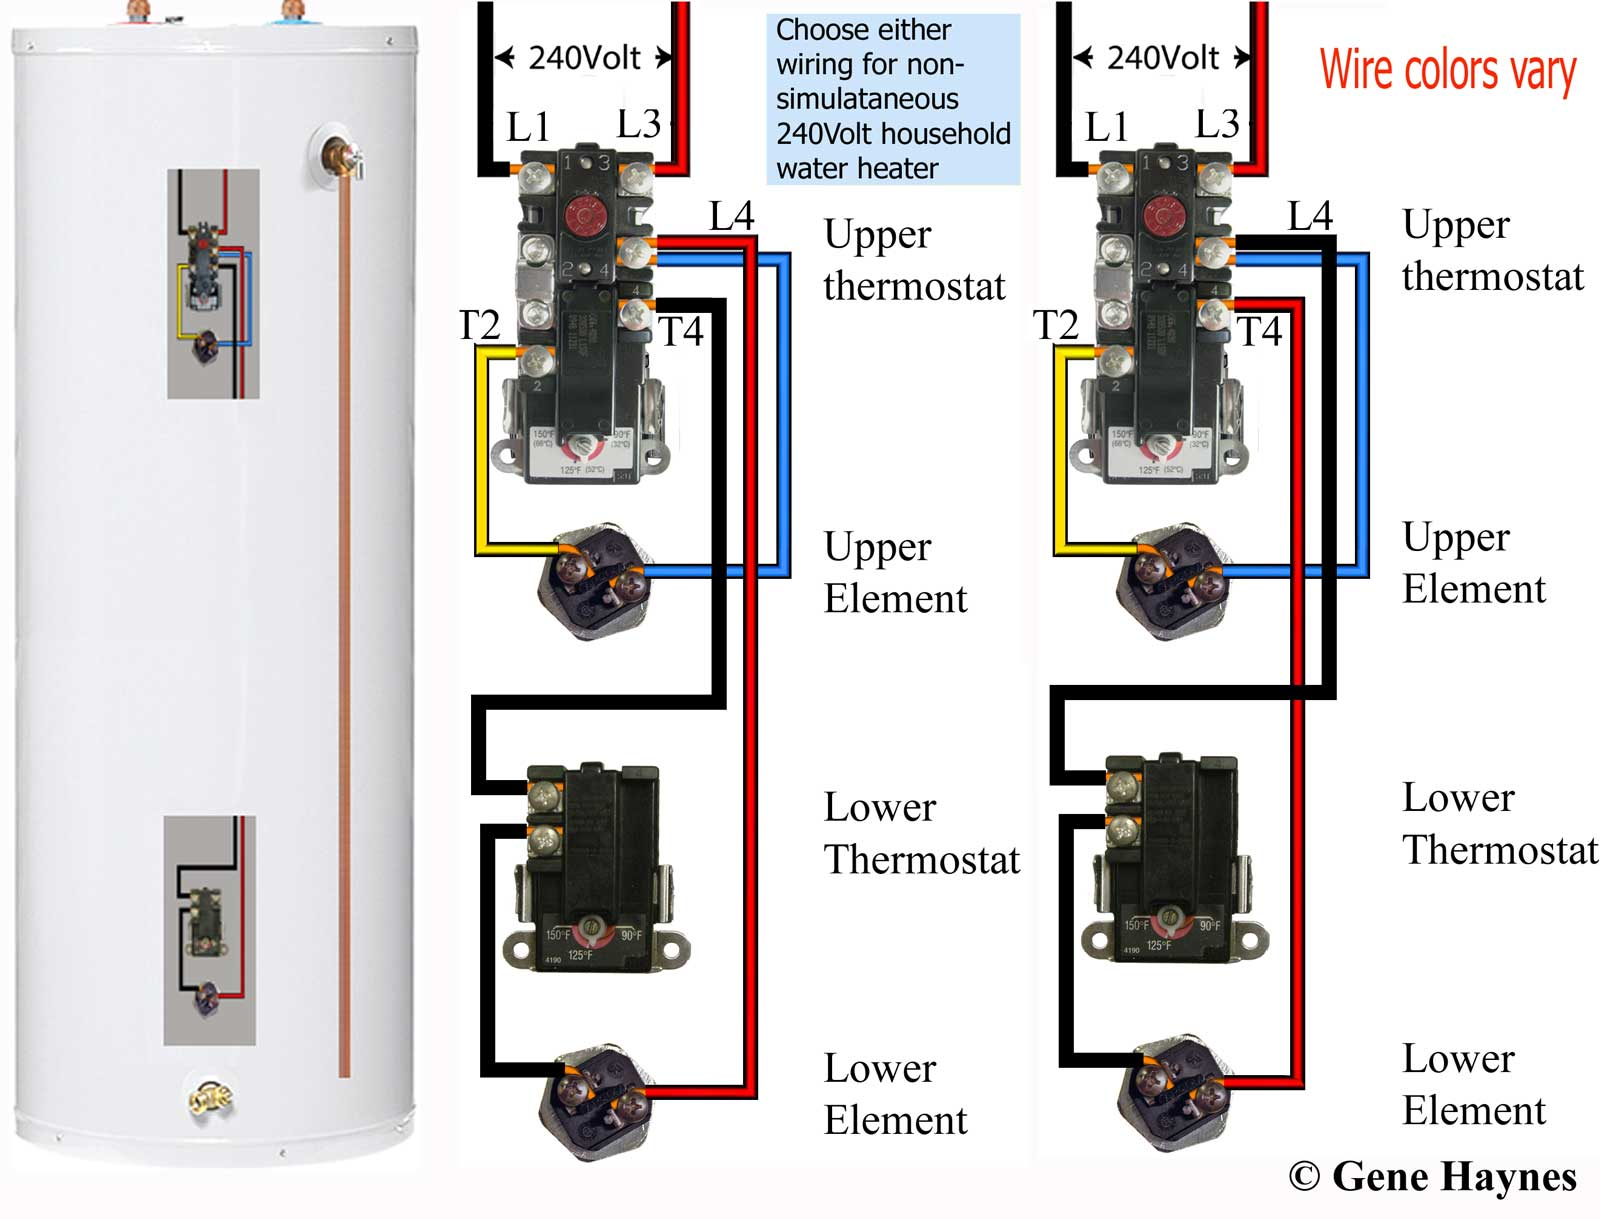 How To Troubleshoot Electric Water Heater 6 Flat Wiring Diagram Illustrated On Right Will Not Prevent Cracked Element It Only Mask Problem Of Lower And